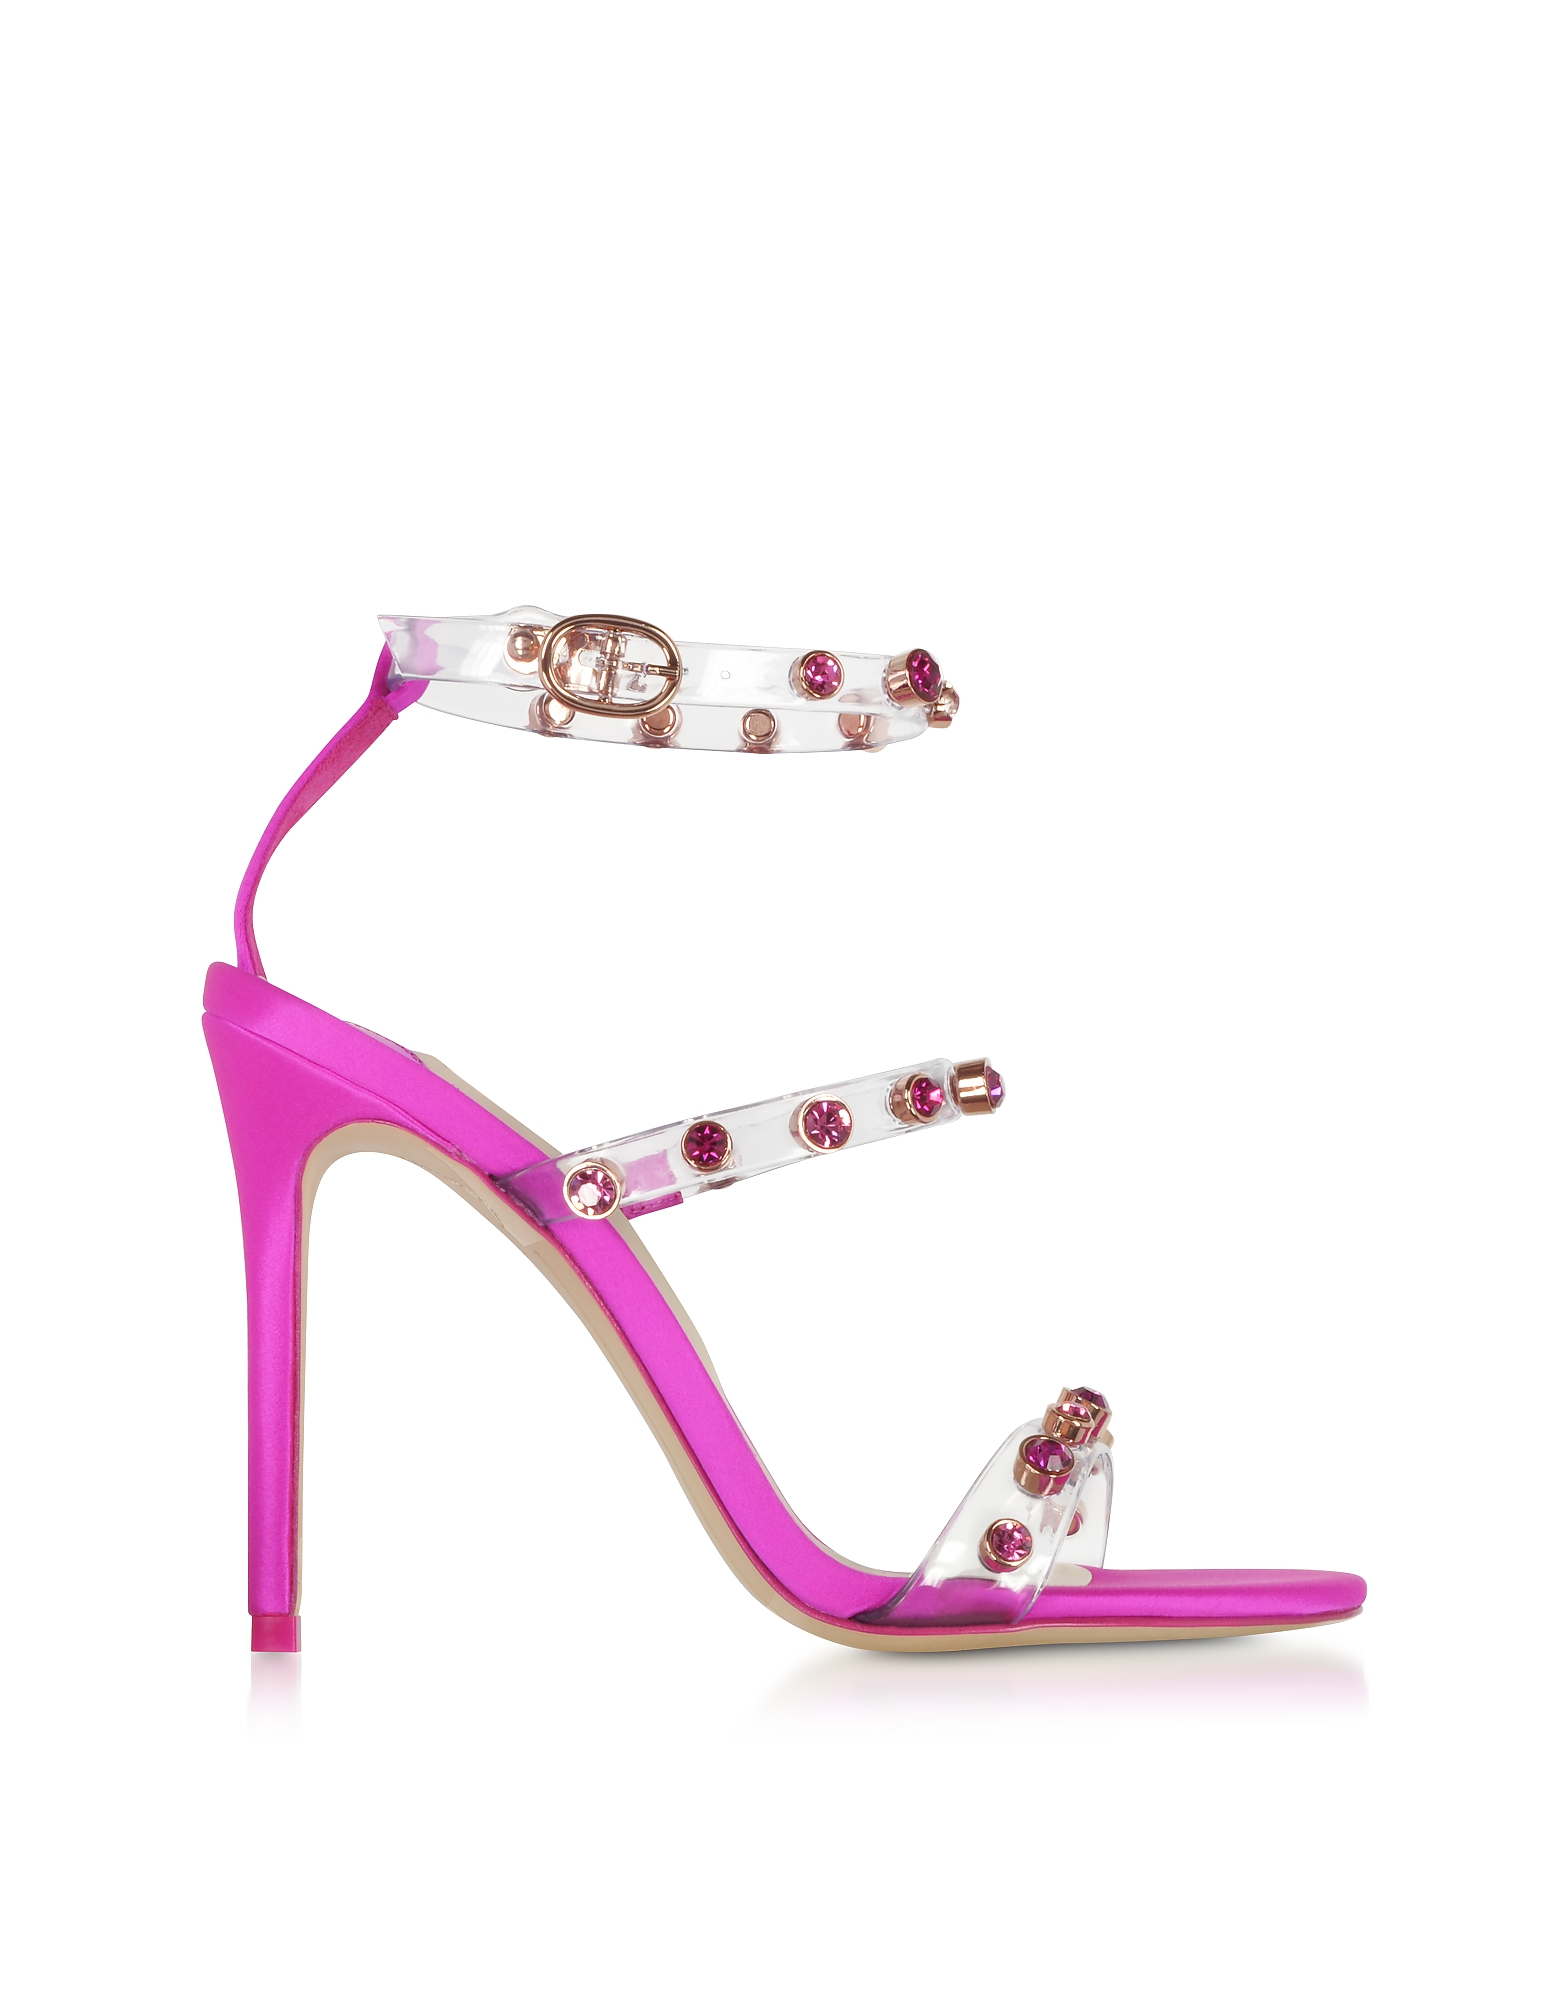 Sophia Webster Shoes, Fuchsia Vinyl and Satin Rosalind Gem Sandals